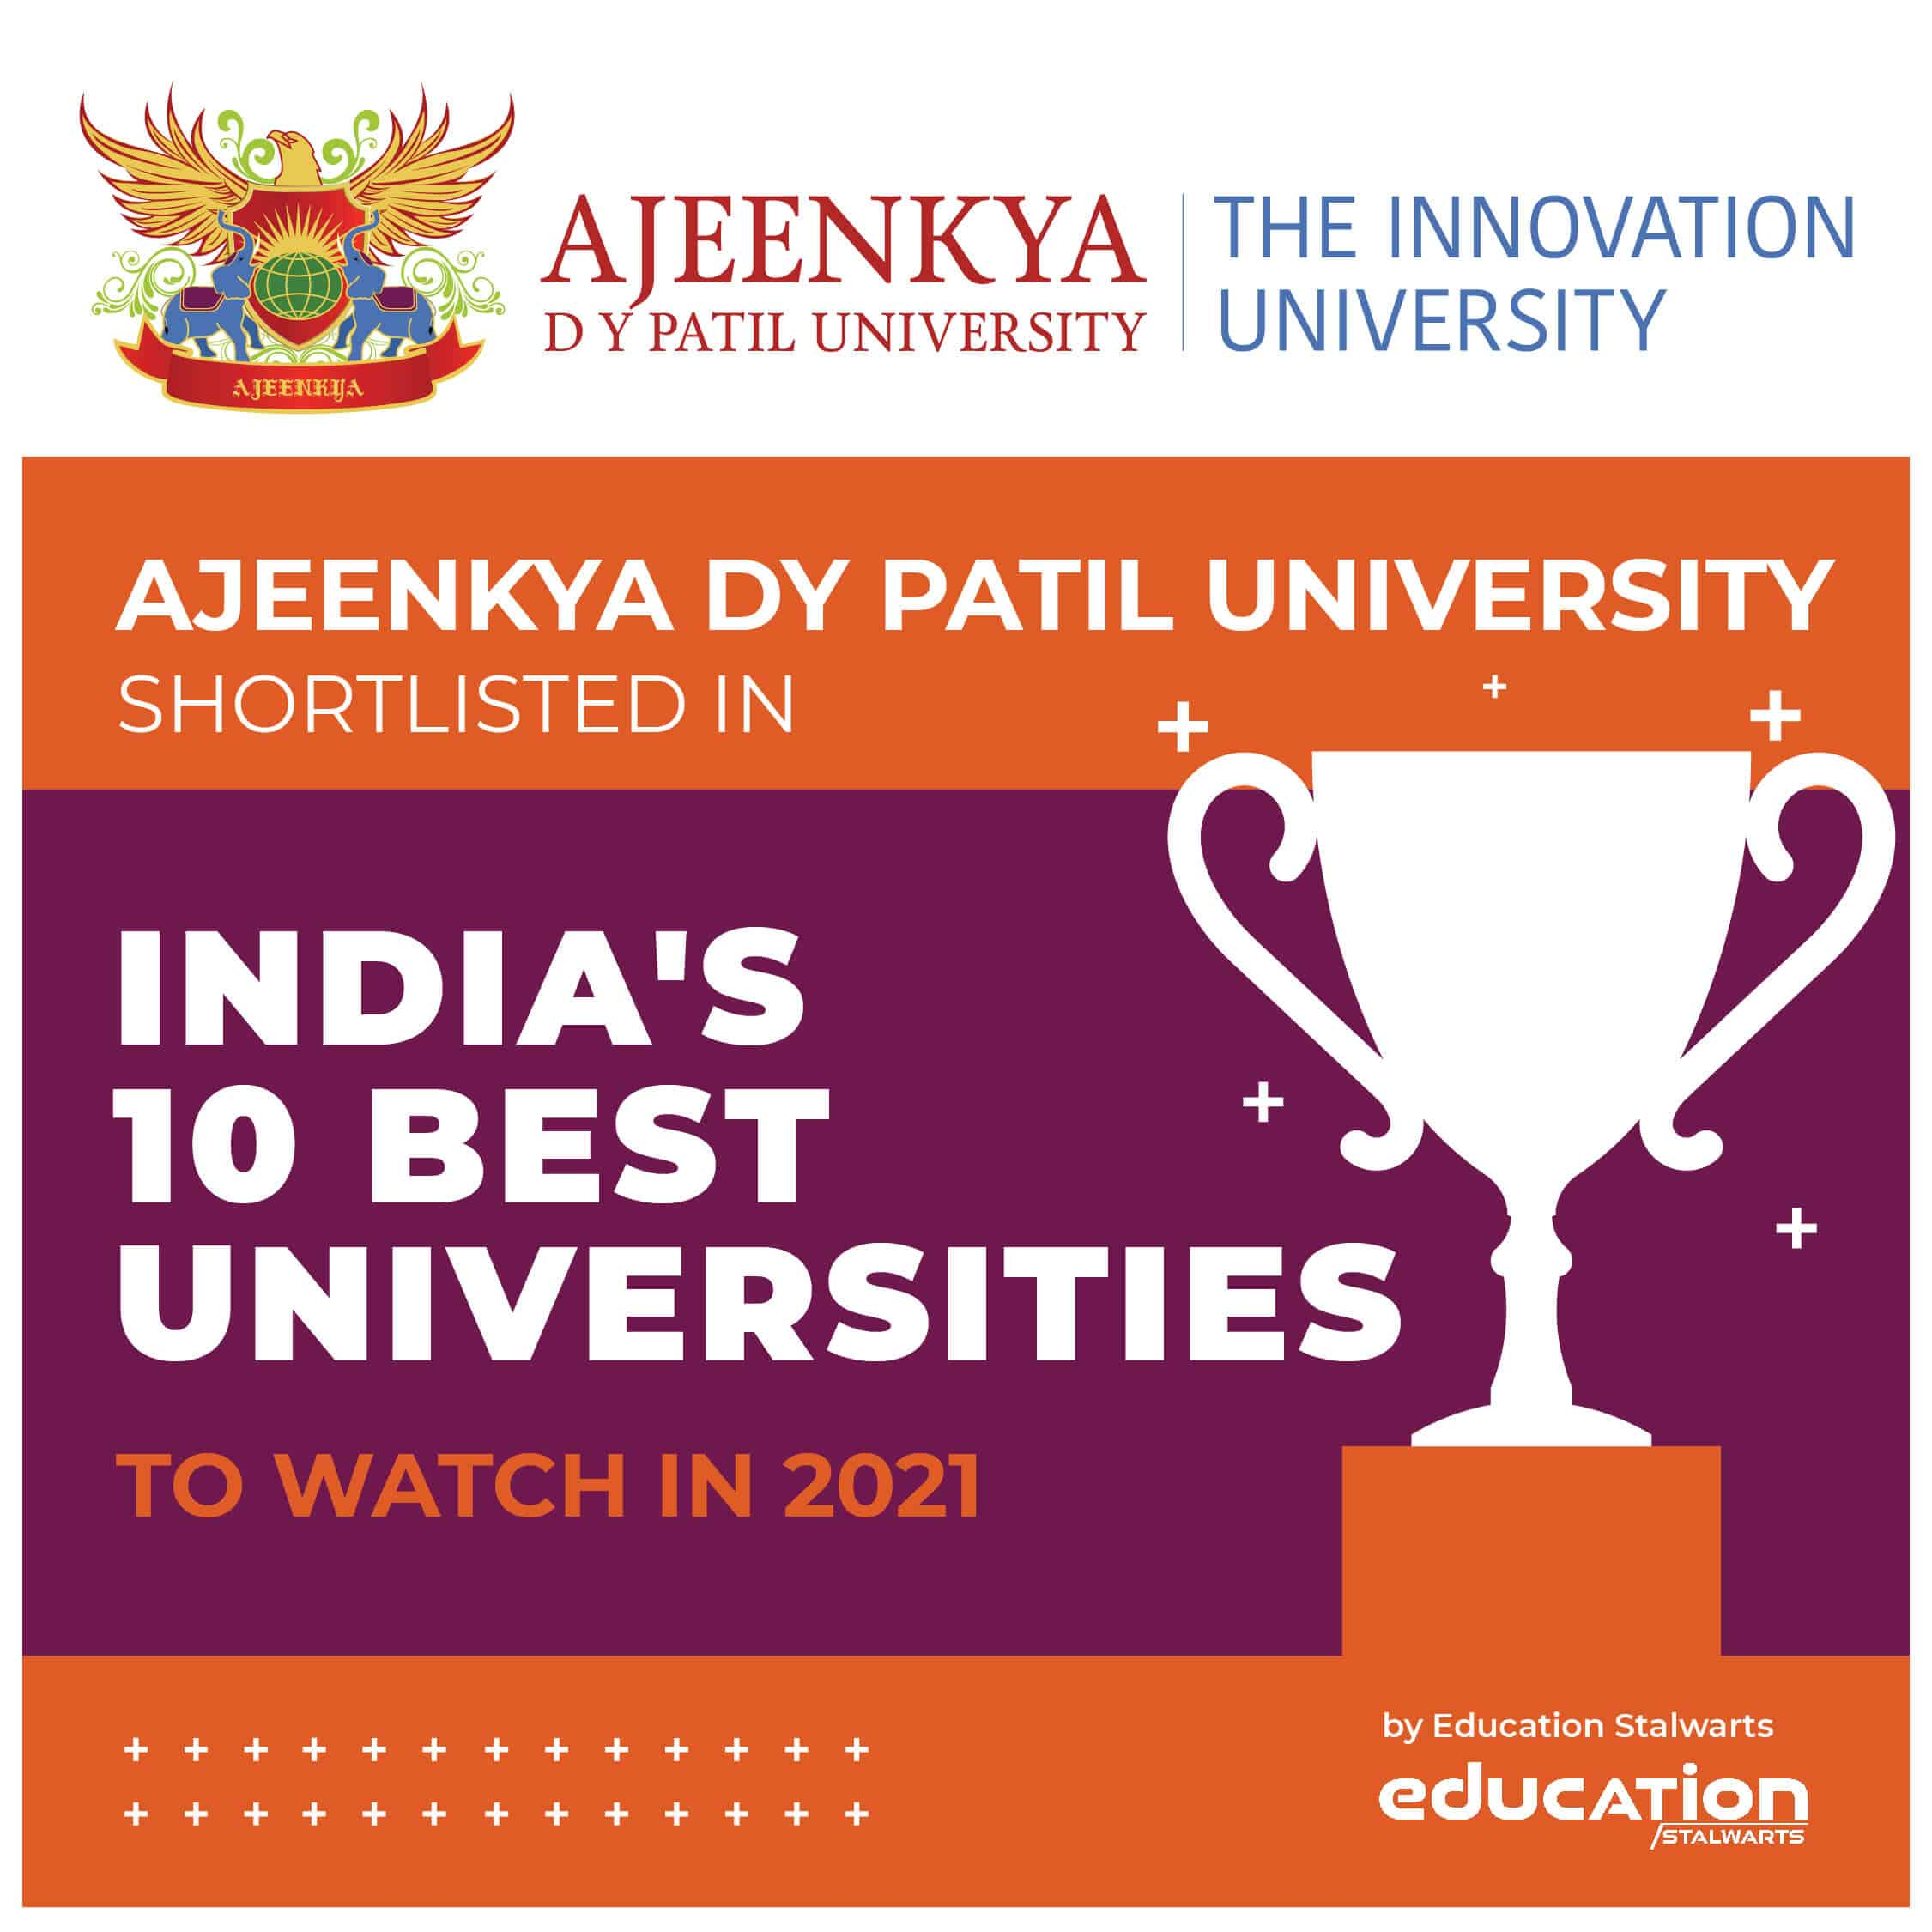 Ajeenkya DY Patil University got shortlisted in India's 10 Best Universities to Watch in 2021 by Education Stalwarts, ADYPU Top University to watch in 2021